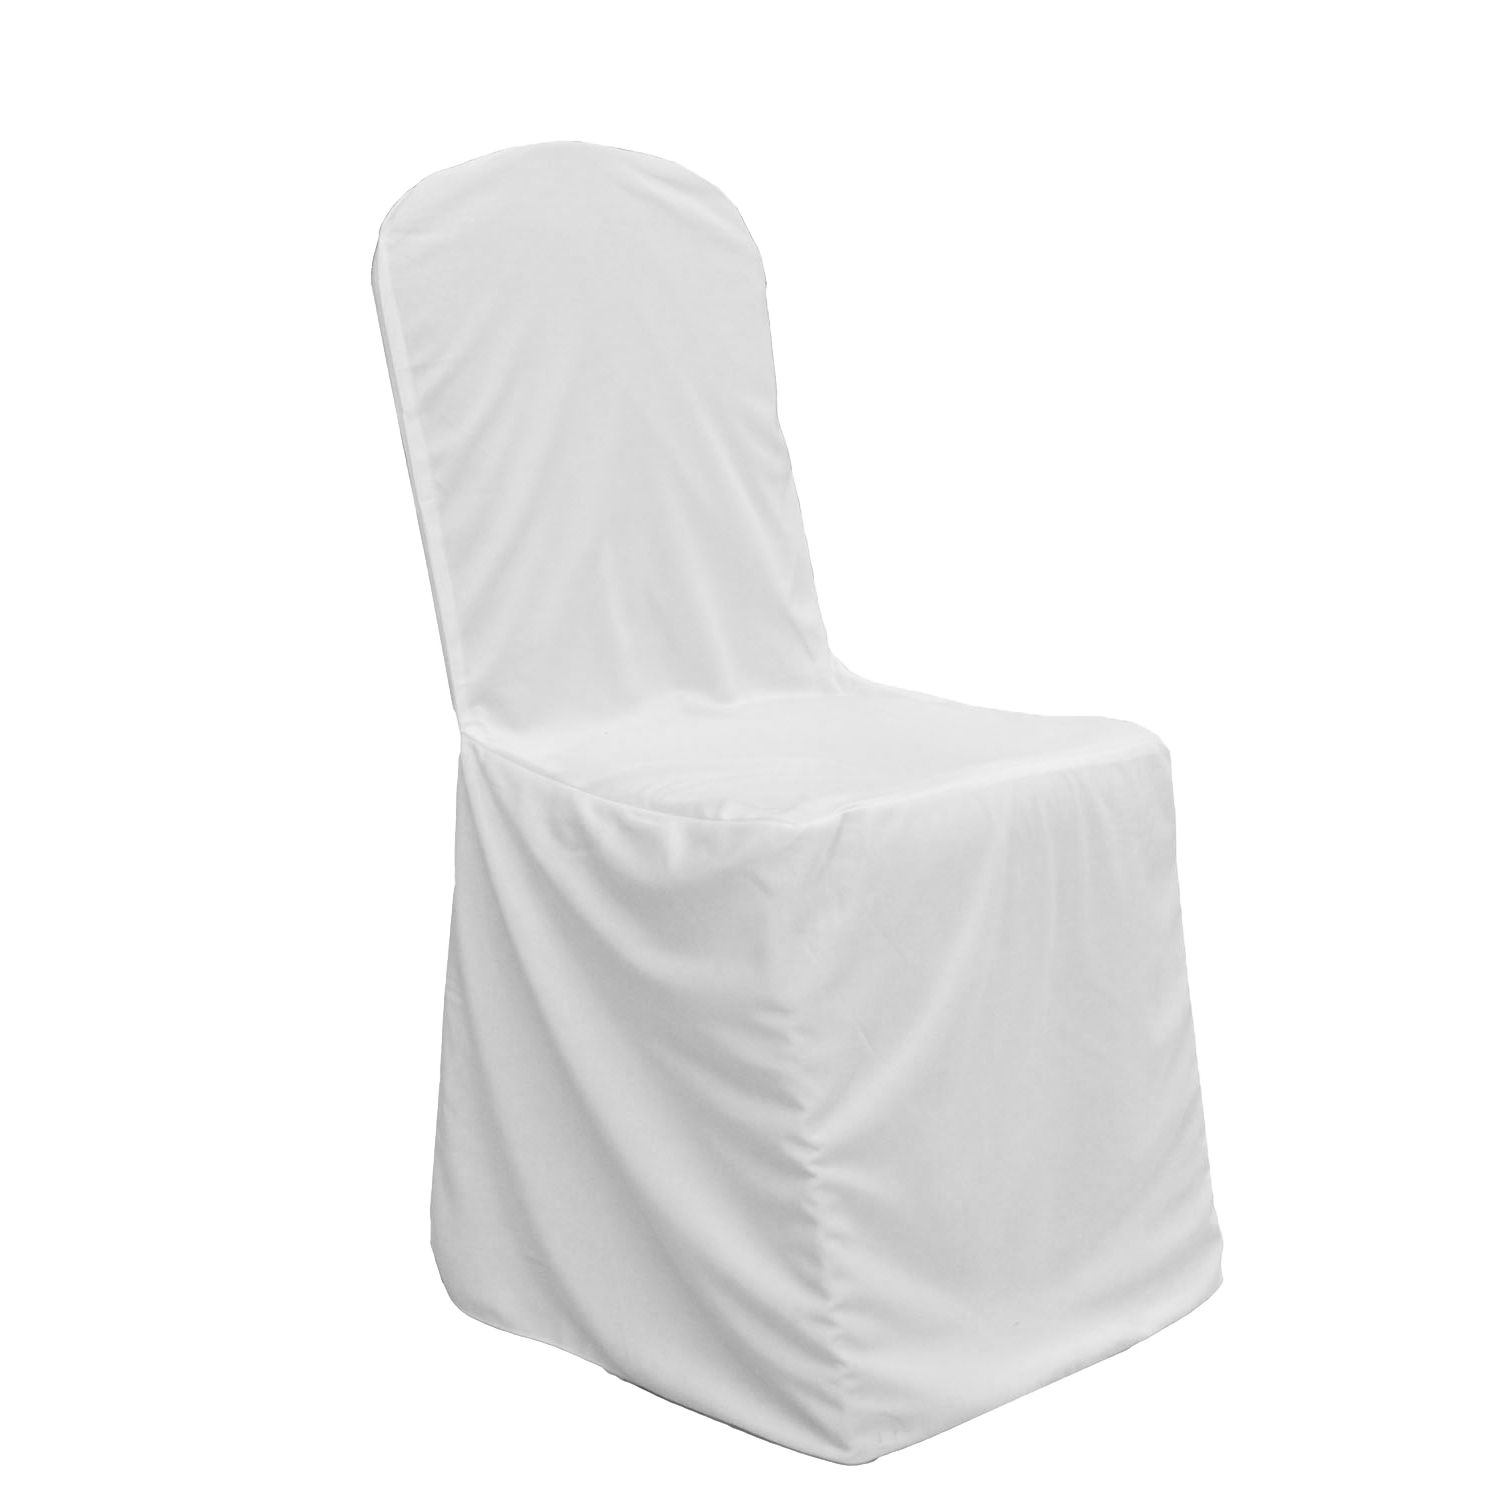 white chair sashes farmhouse table and chairs scuba stretch banquet cover at cv linens